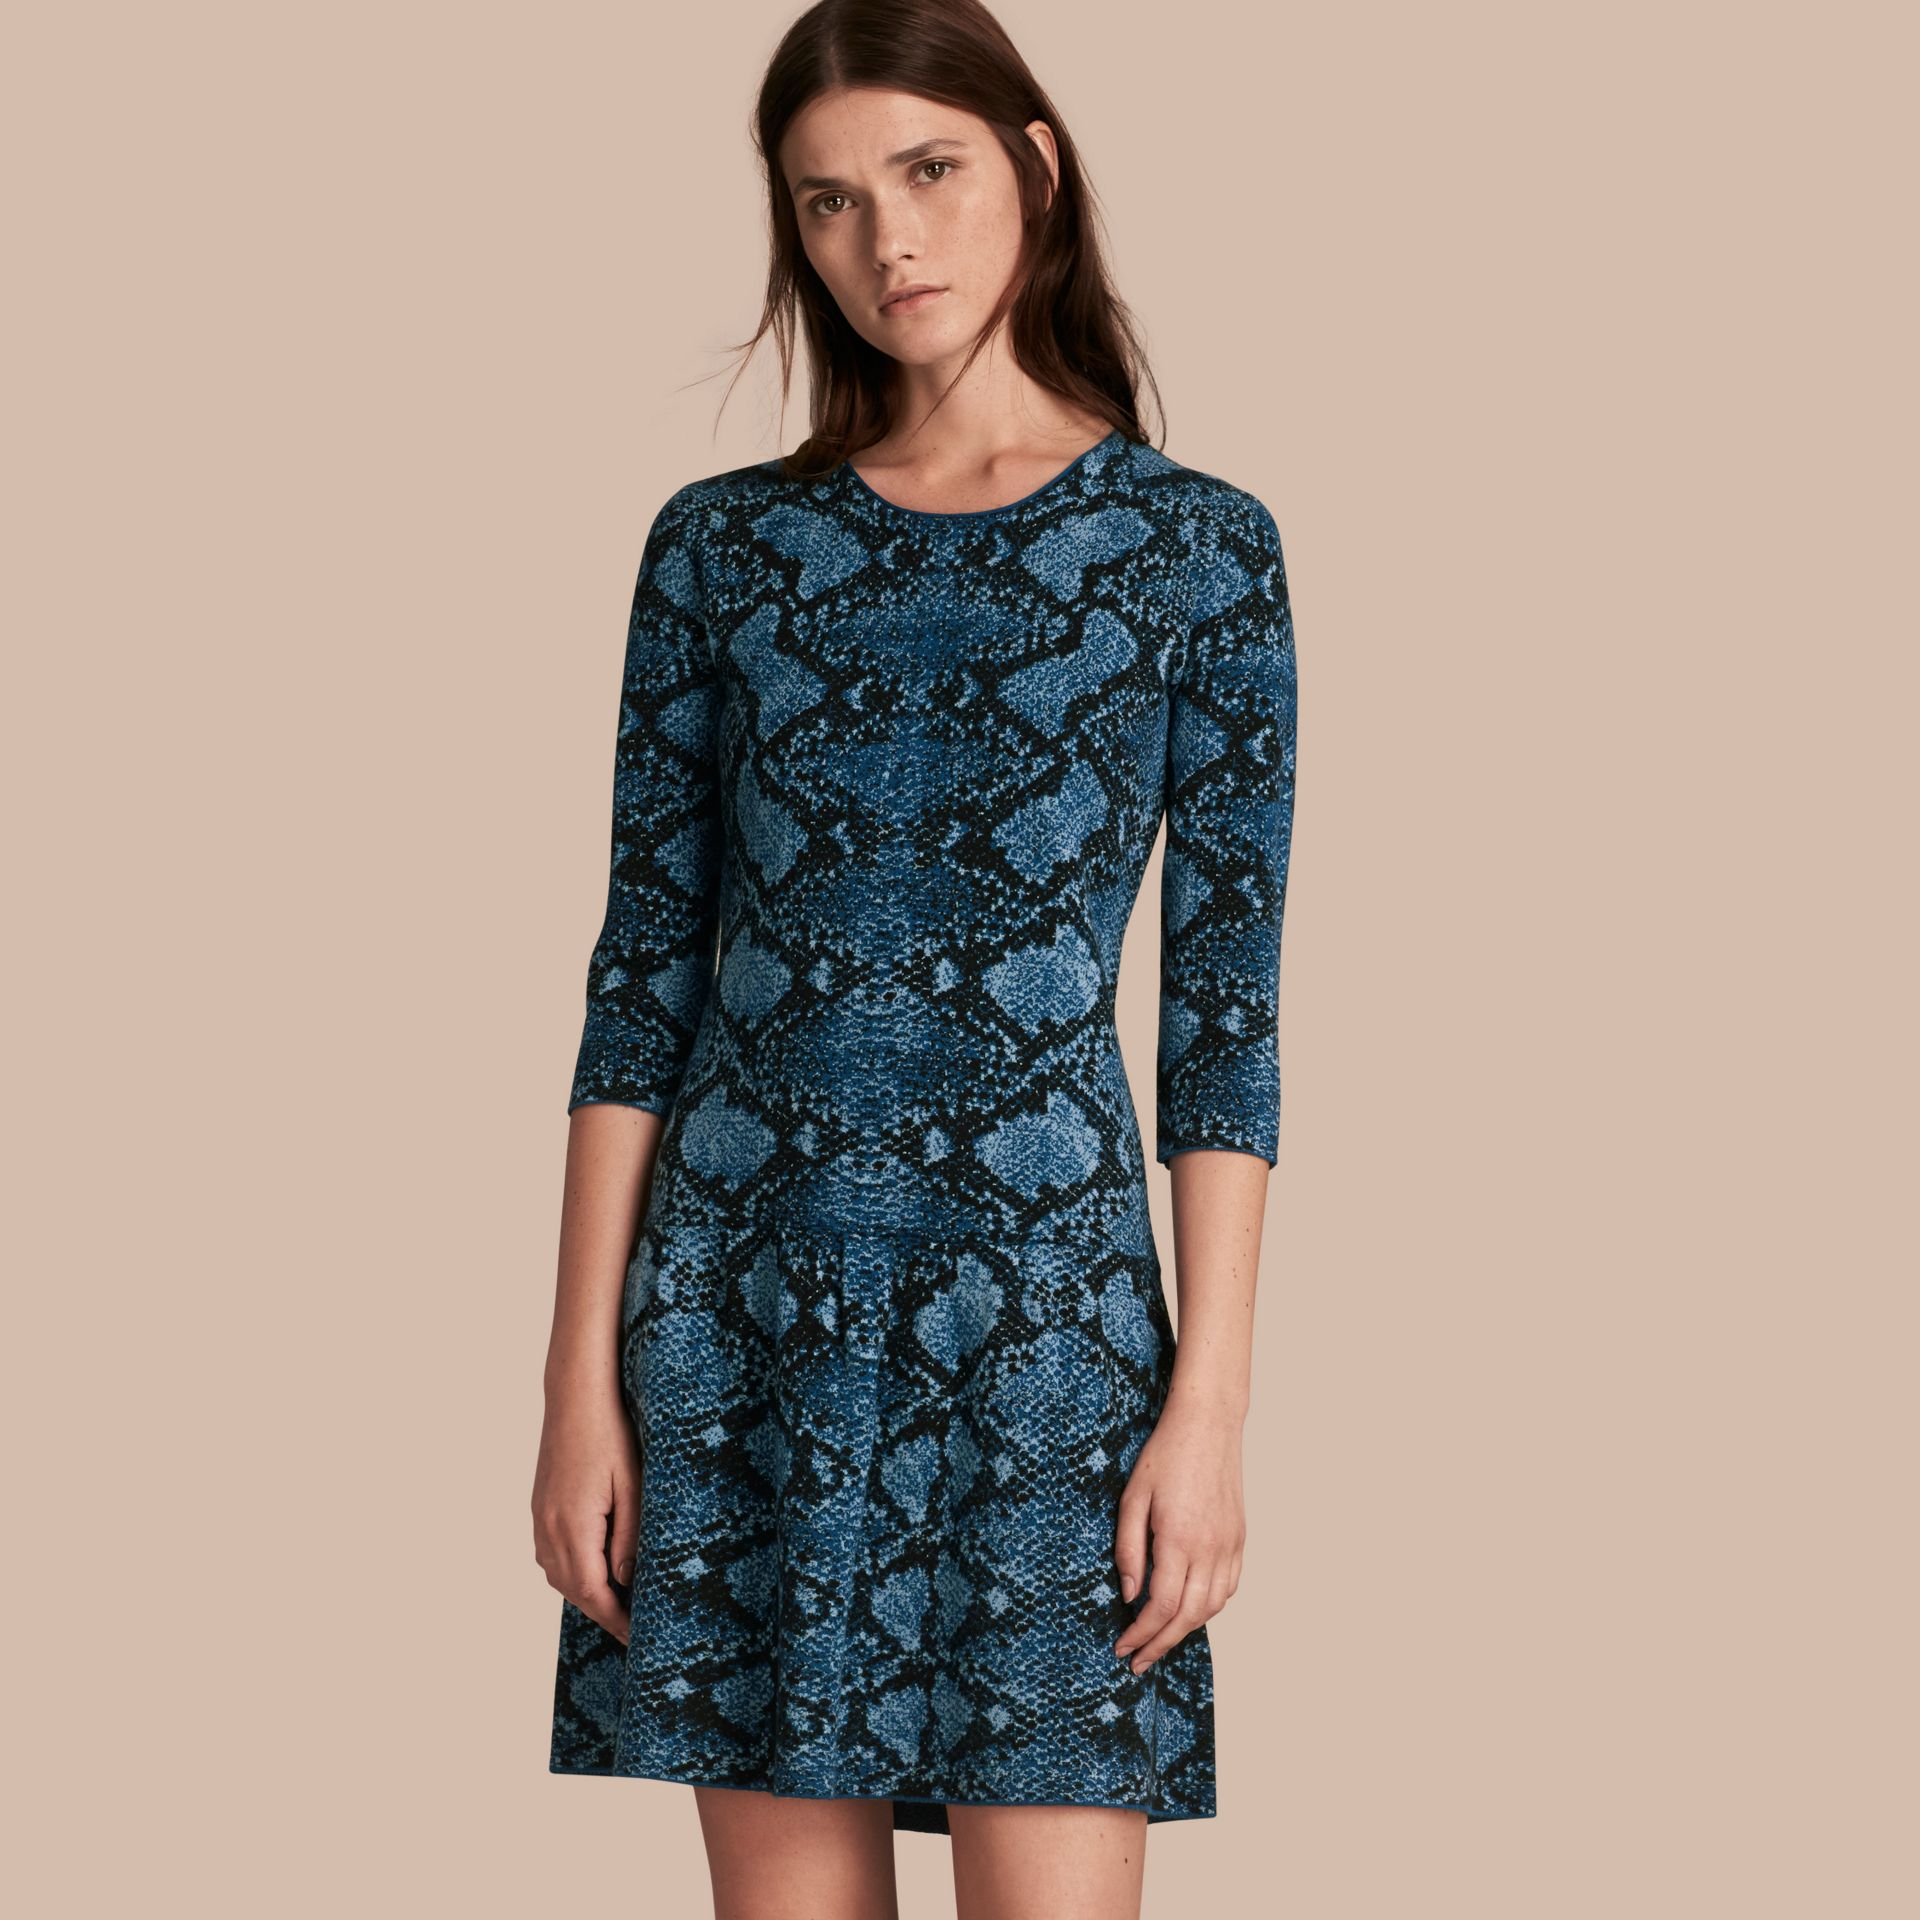 Mineral blue Python Jacquard Merino Wool Dress - gallery image 1